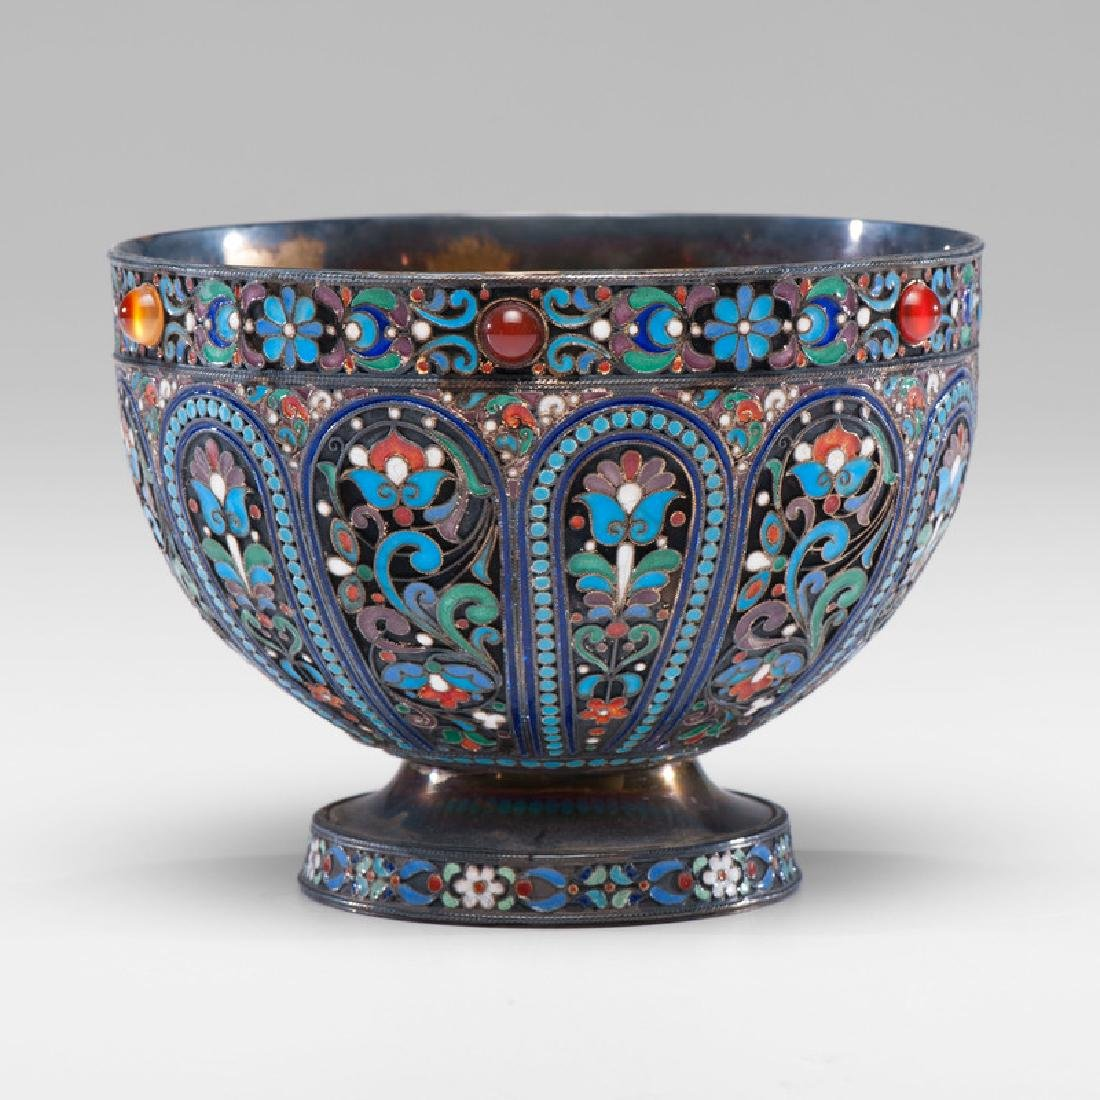 Russian Silver-Gilt and Enamel Footed Bowl